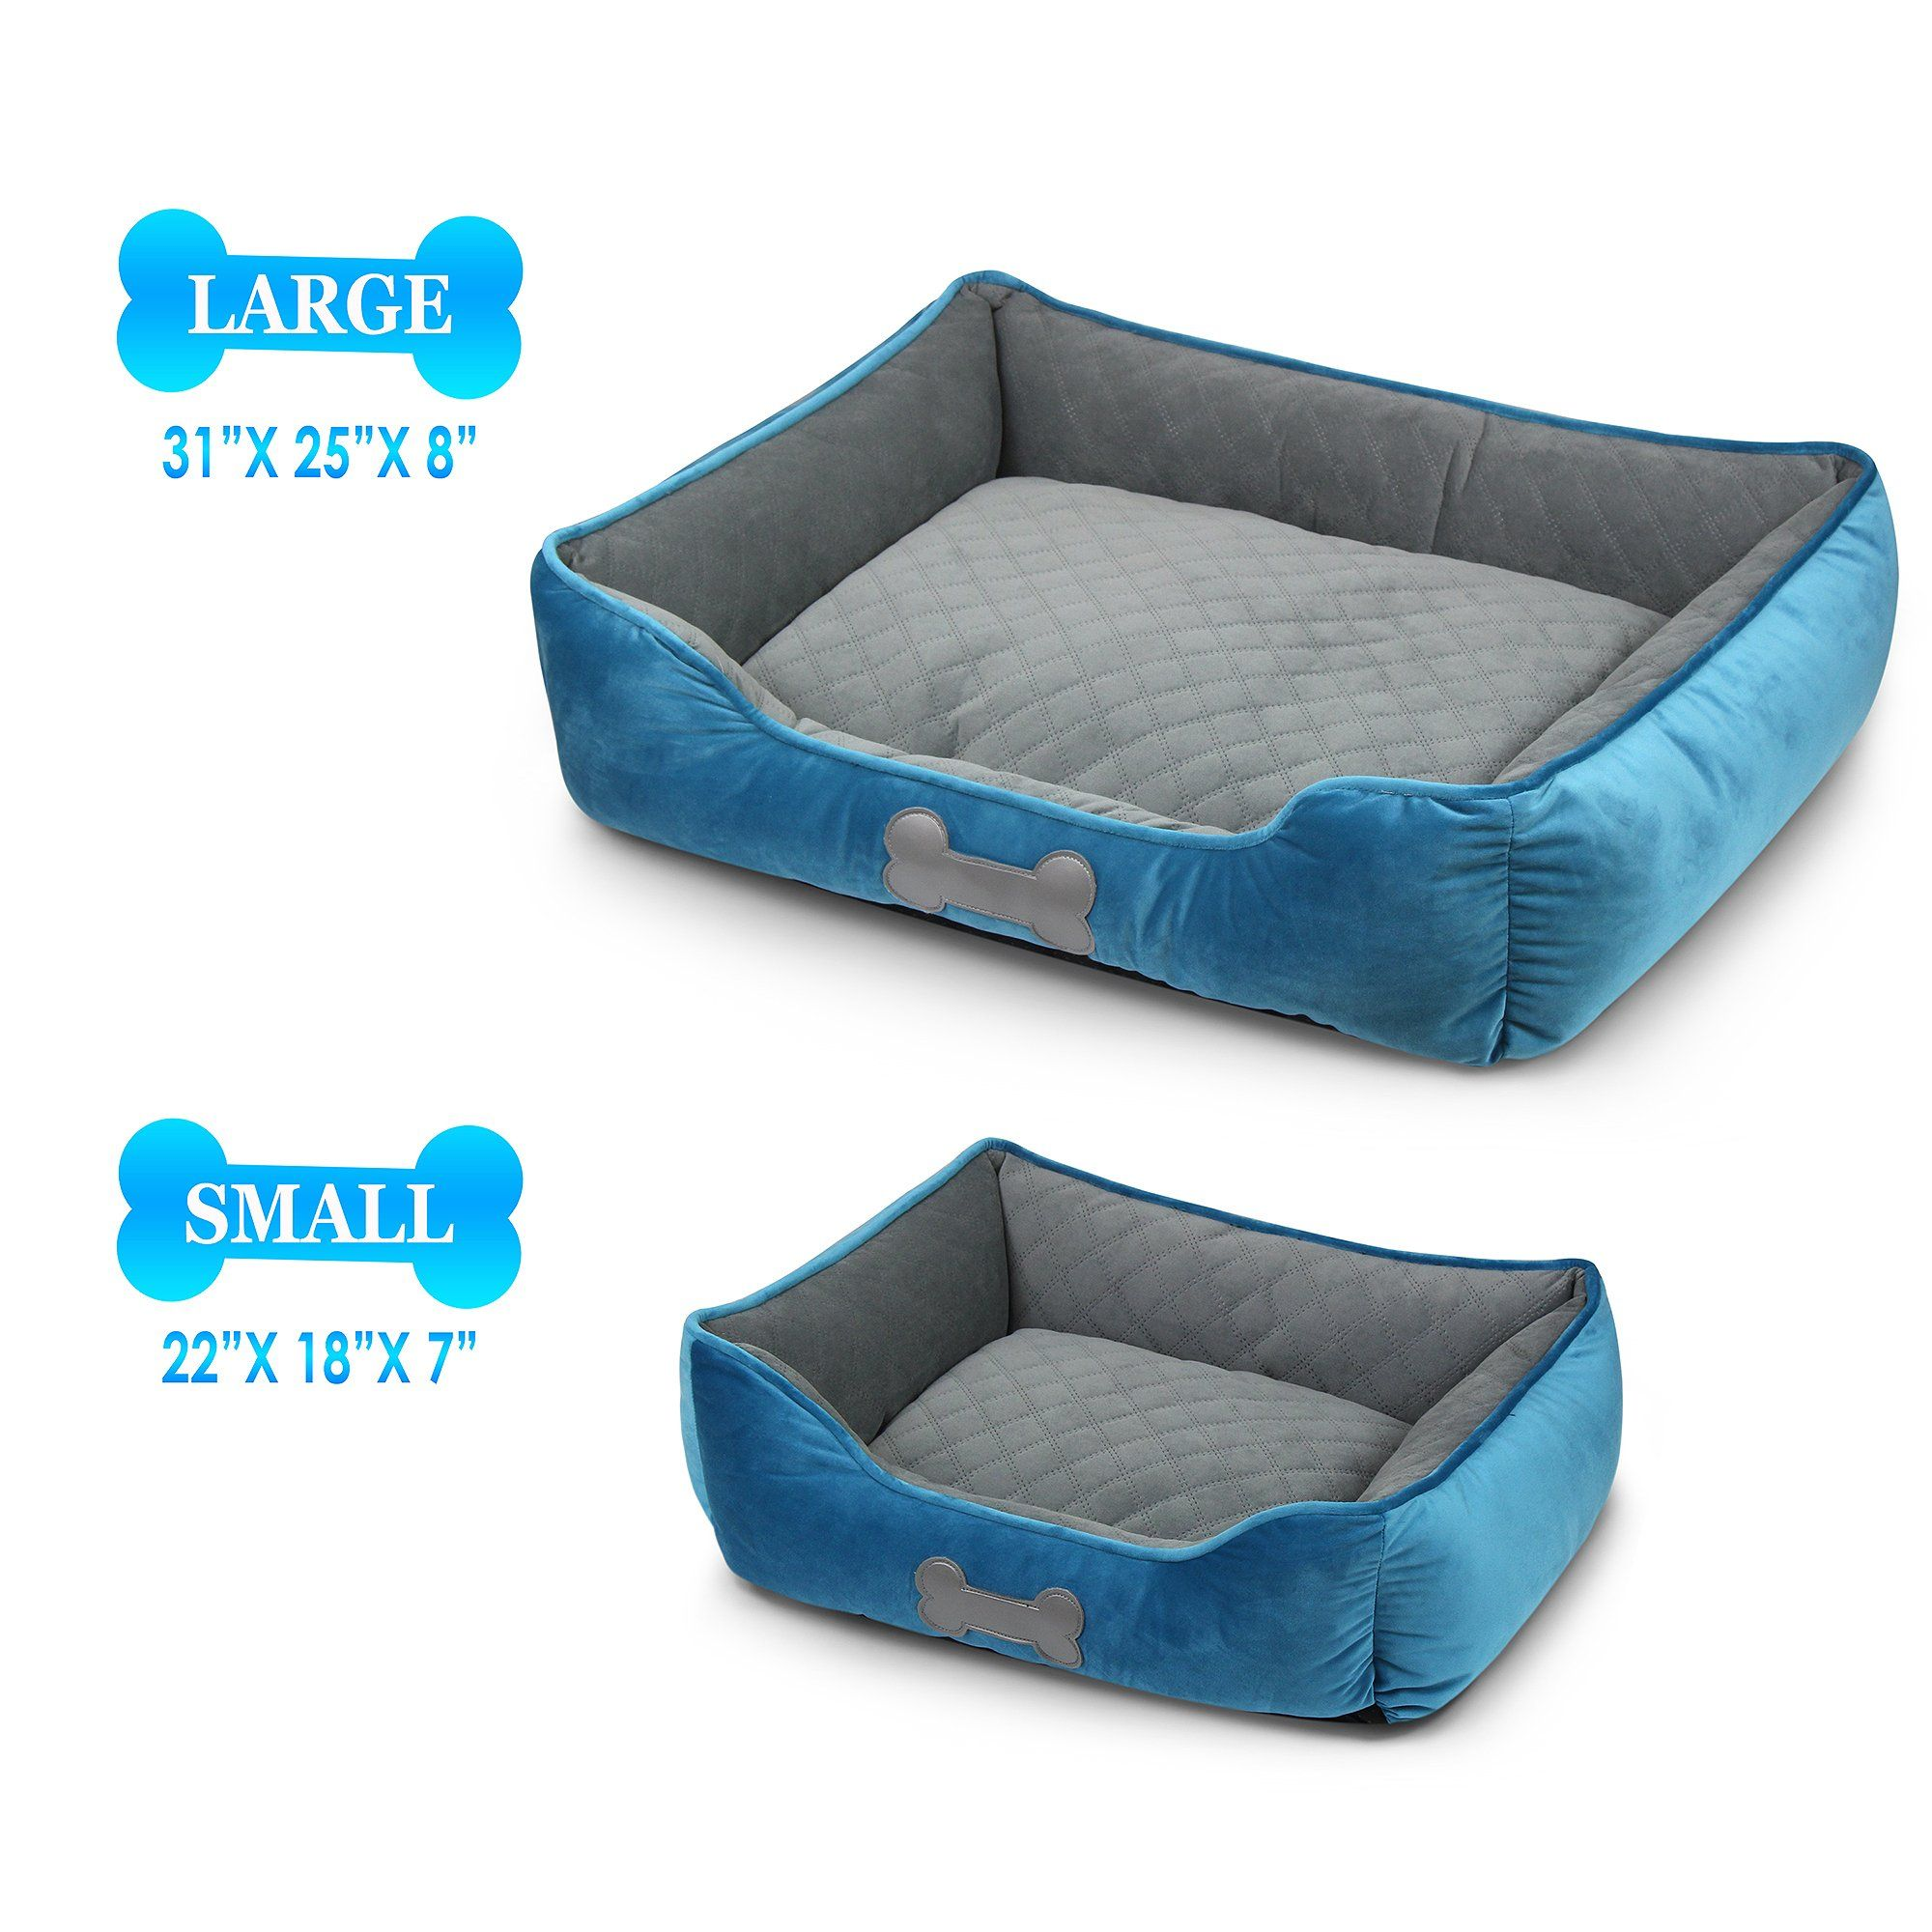 Super Soft Plush Cuddler Blue Plush, Pet beds, Blue